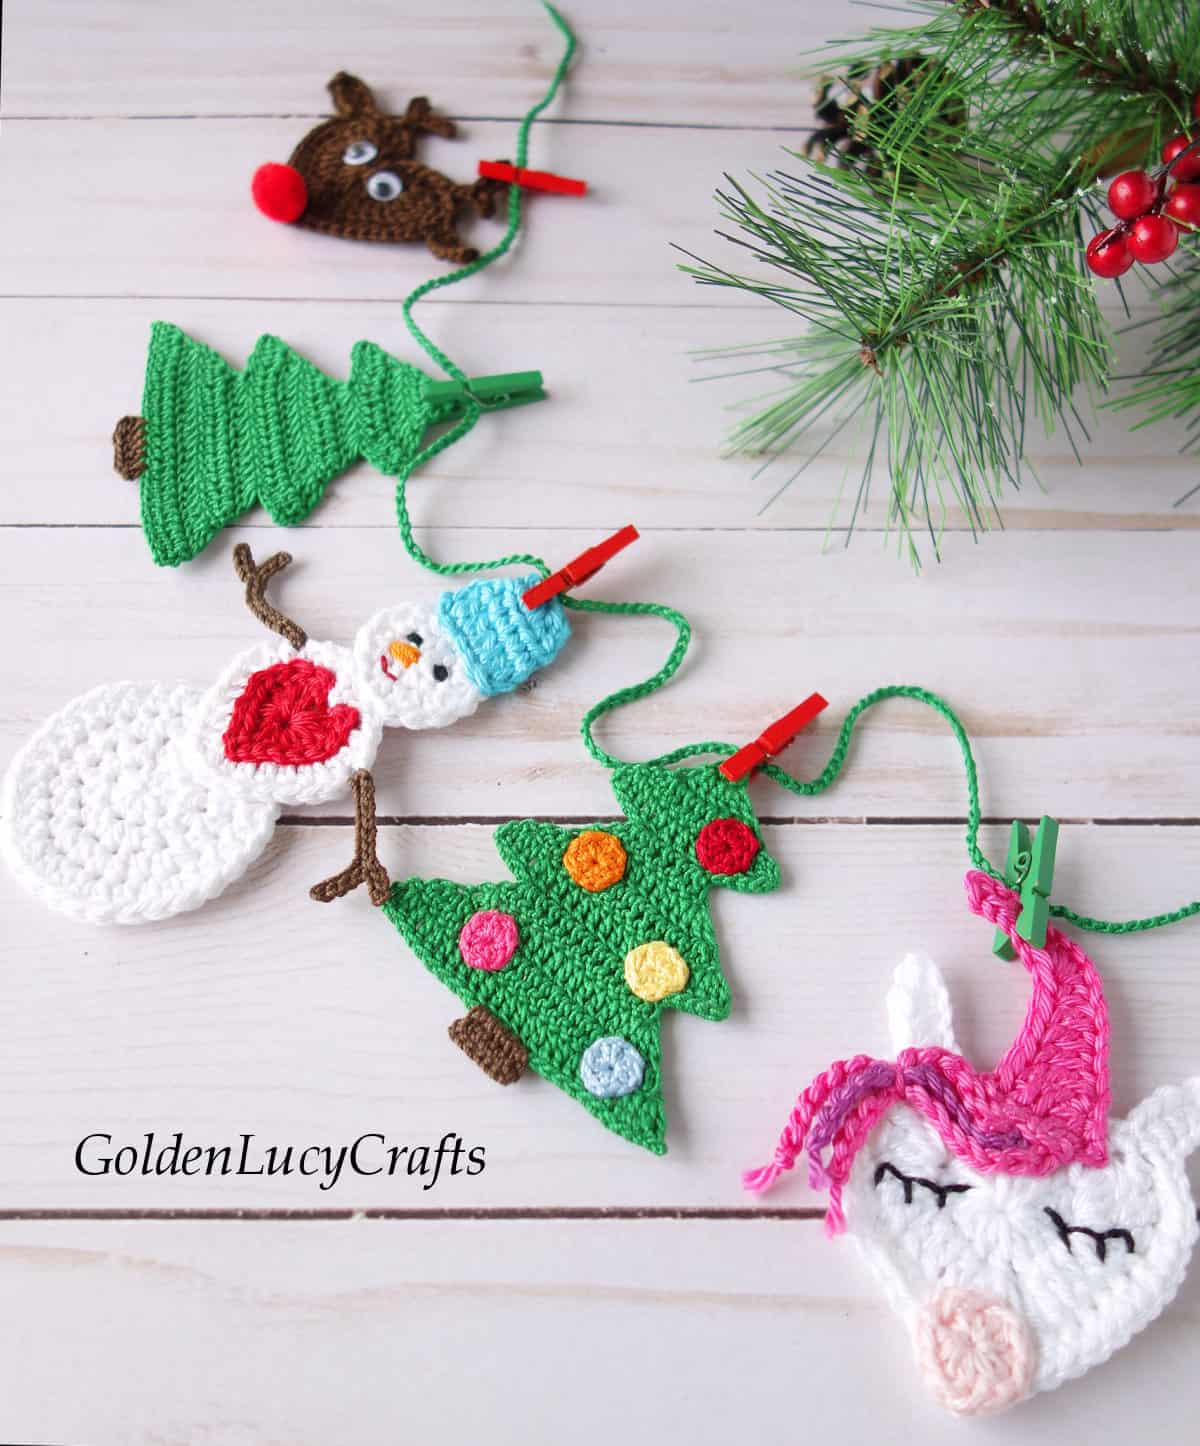 Crochet Christmas bunting close up picture.